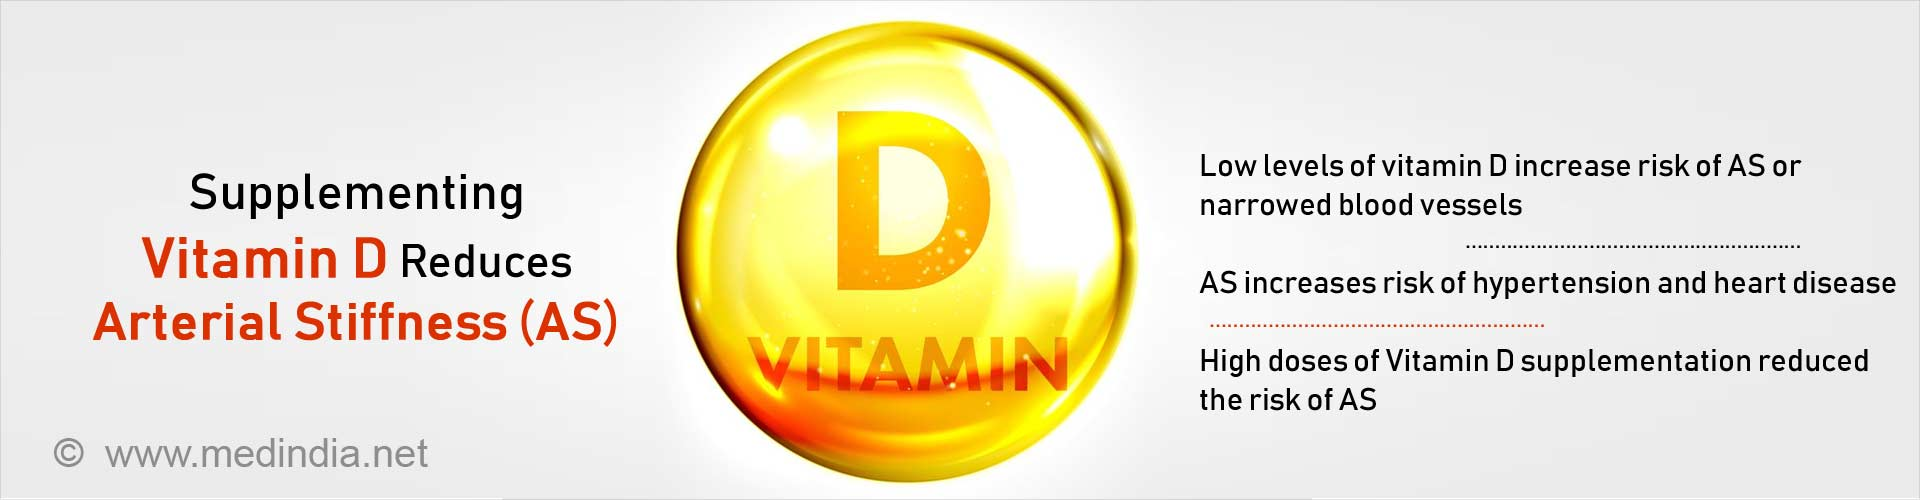 Vitamin D Supplements Reduce Arterial Stiffness in African Americans